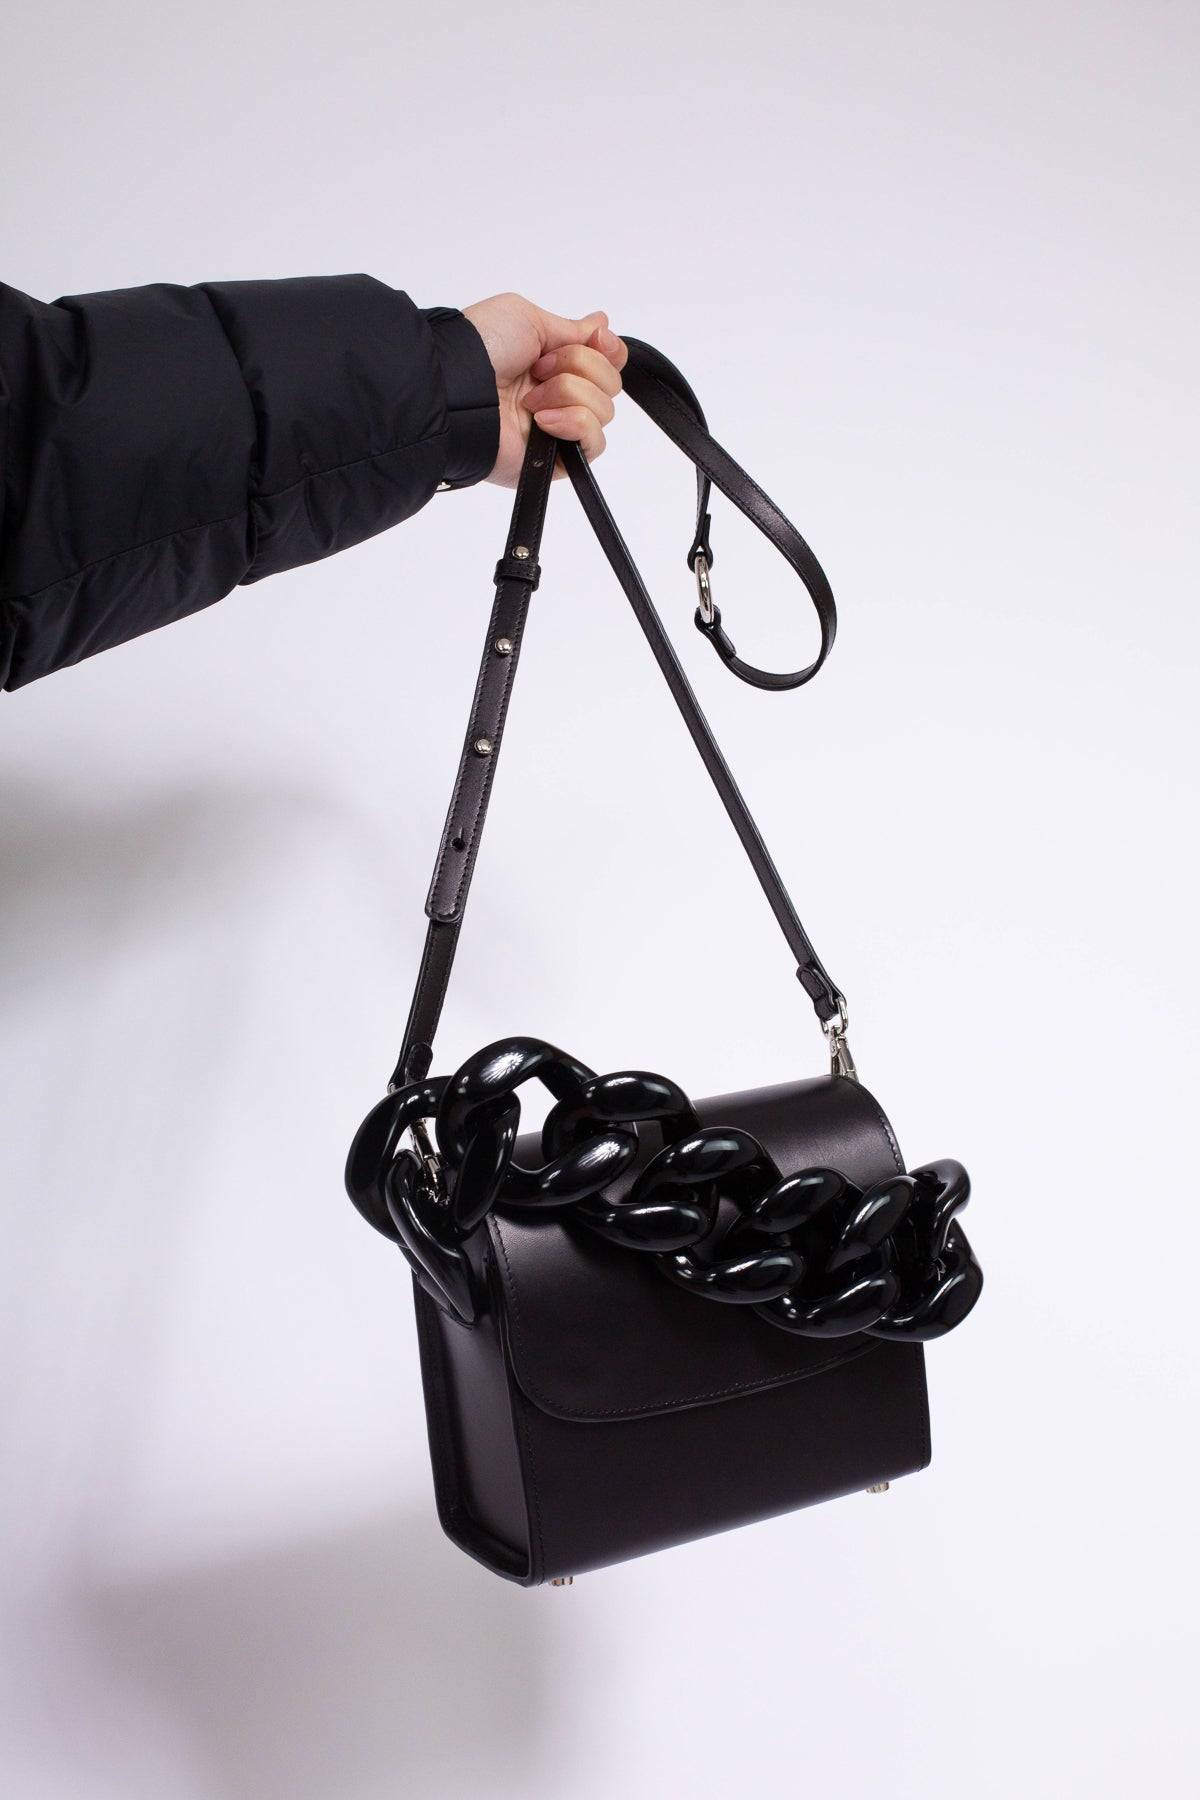 CLASSIC M'A BLACK CHAIN BAG - marques-almeida-dev